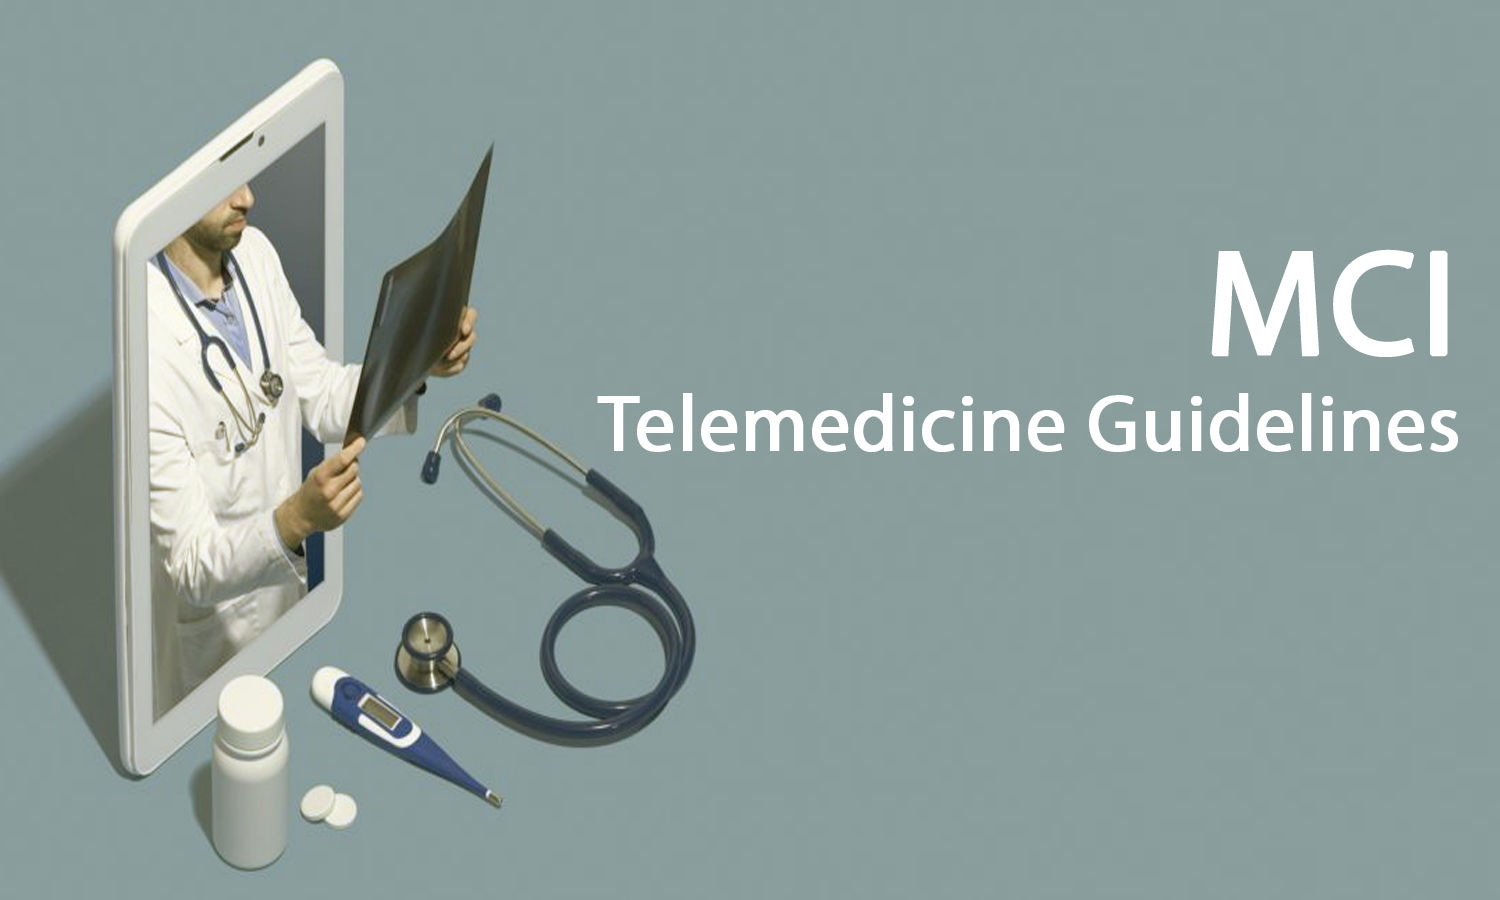 MCI allows Telephonic, online consutlations, releases Telemedicine practice guidelines for doctors